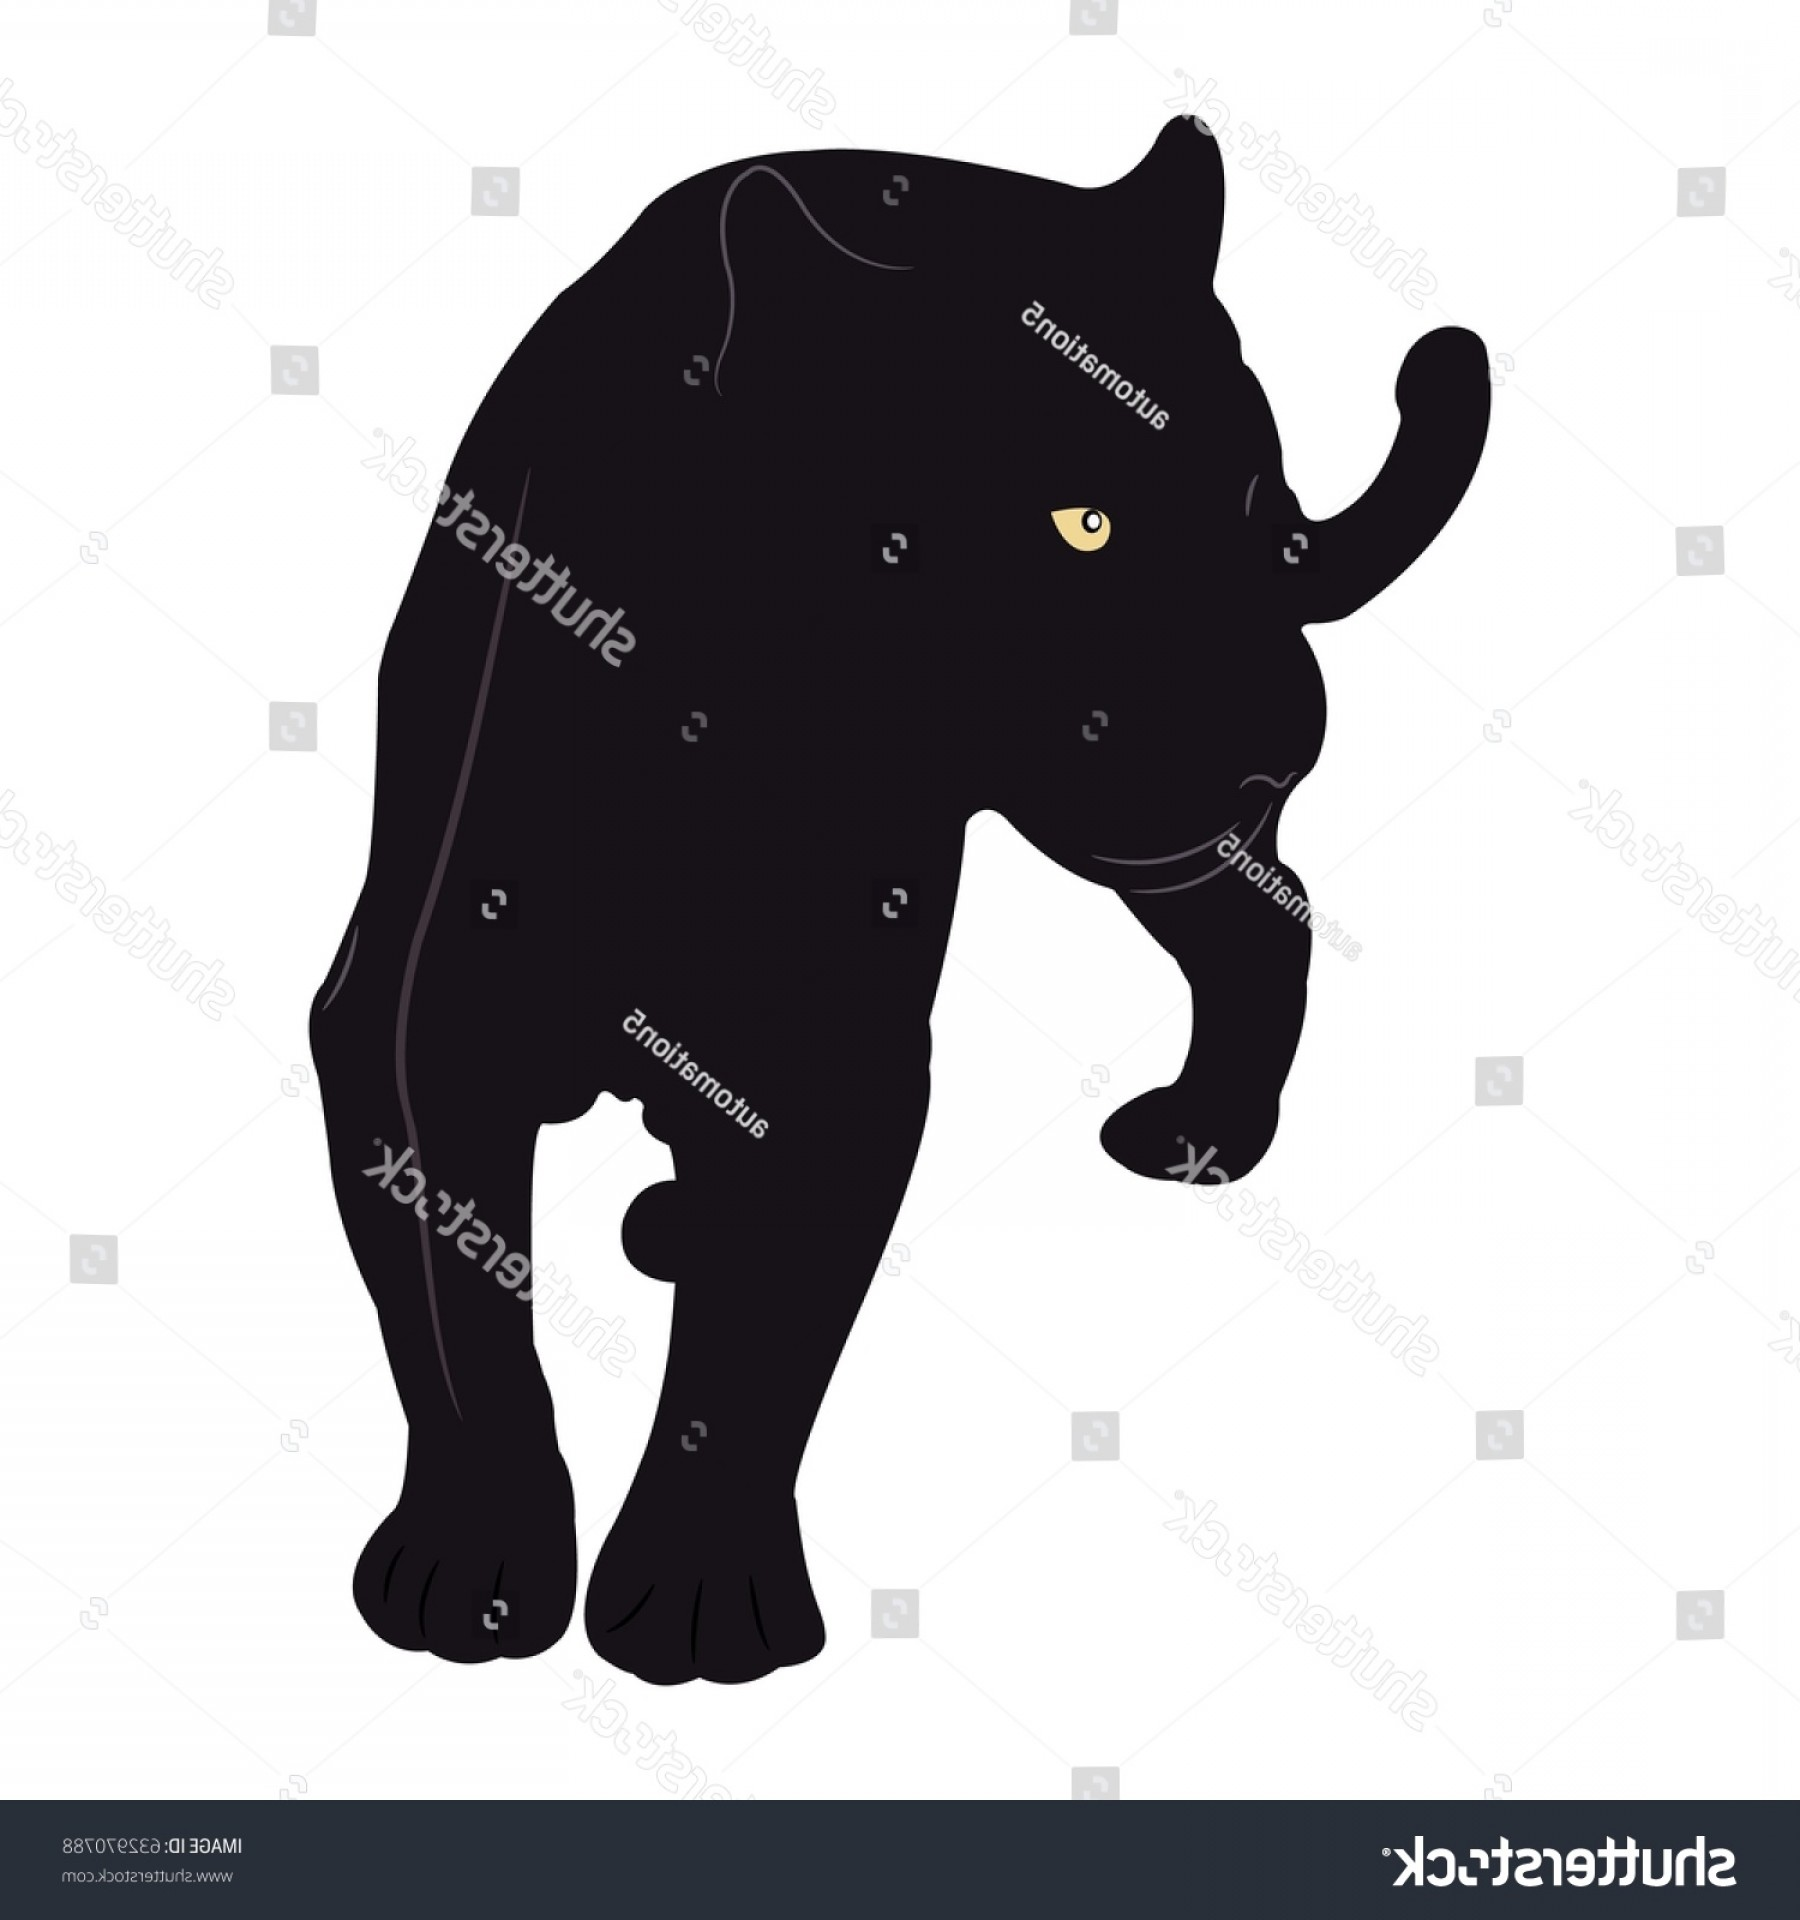 Panther Vector: Black Panther Vector Illustration On White